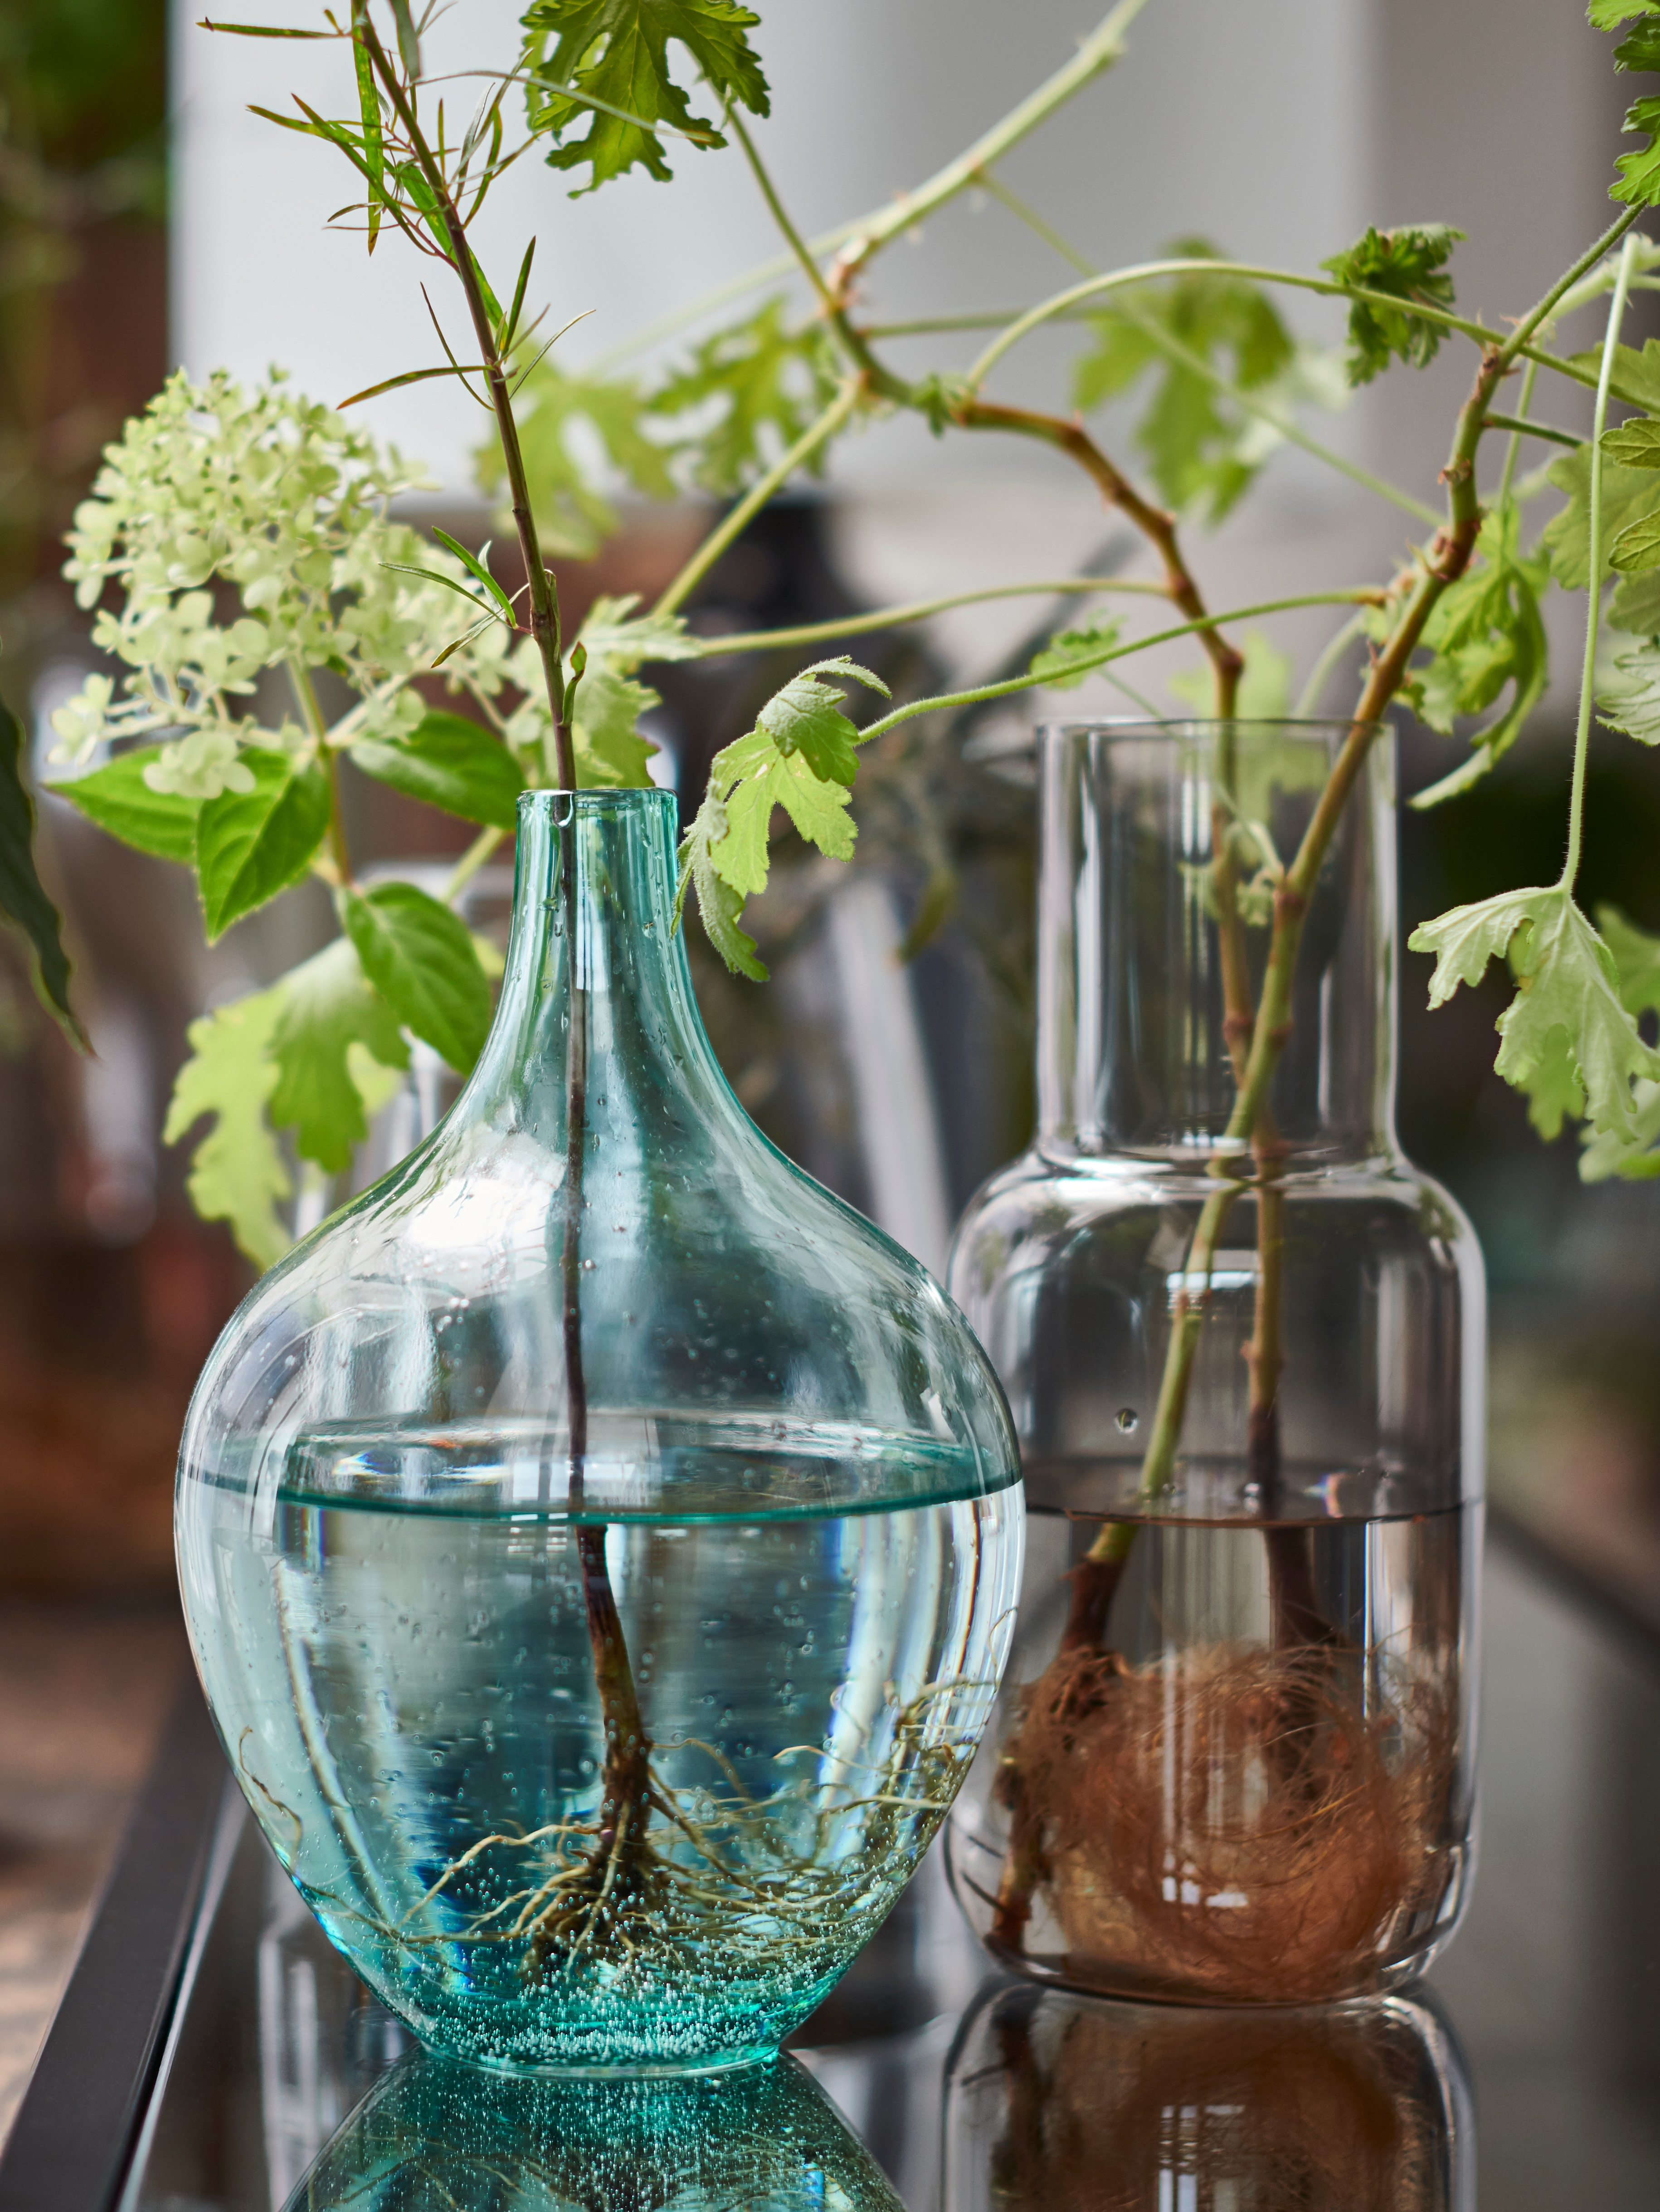 A light turquoise SALONG vase filled with water holding a green leafy plant beside a FÖRENLIG vase on a shiny black worktop.